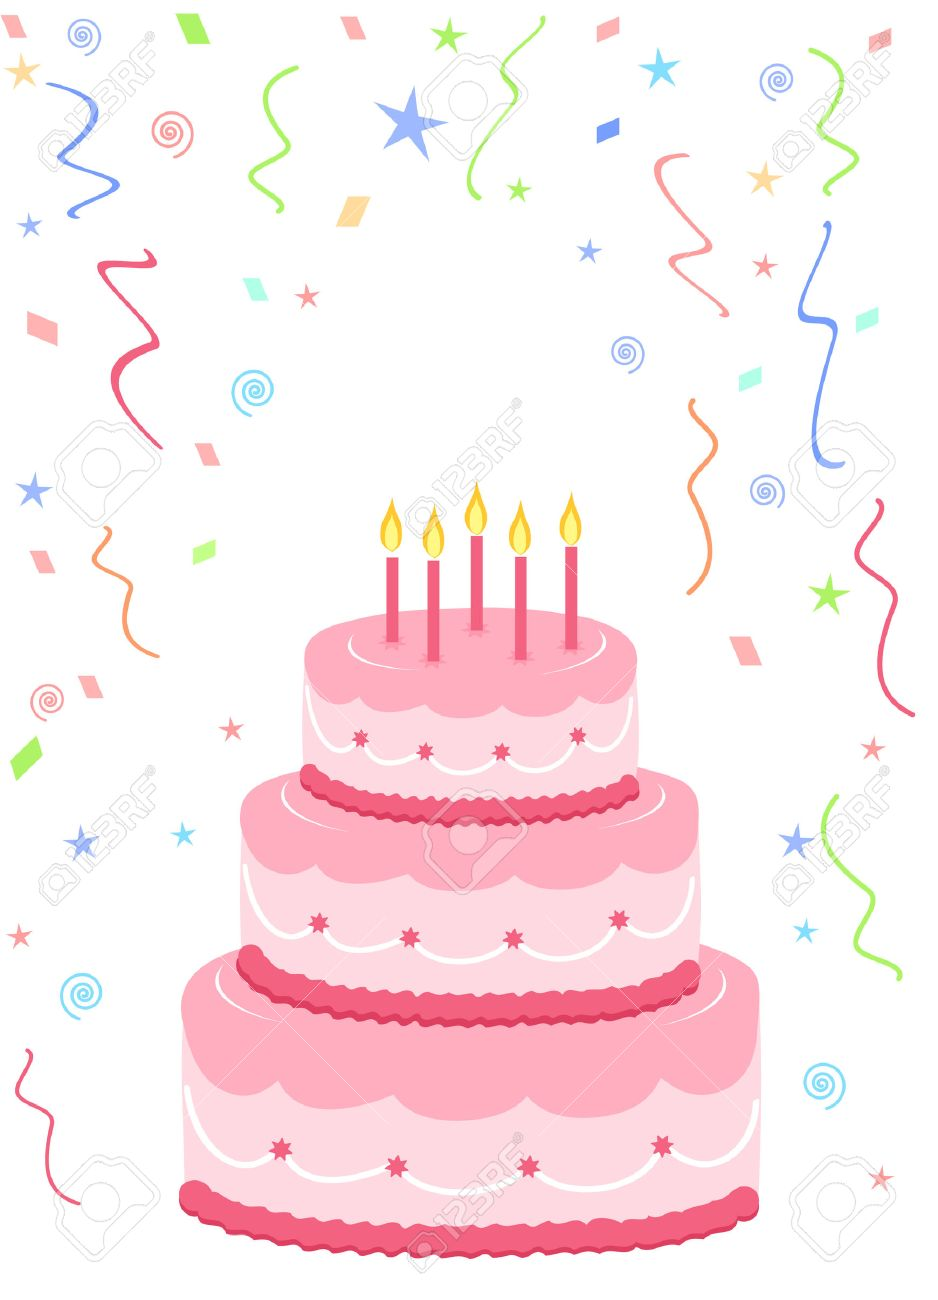 Pink Birthday Cake With Confetti On White Background Royalty Free